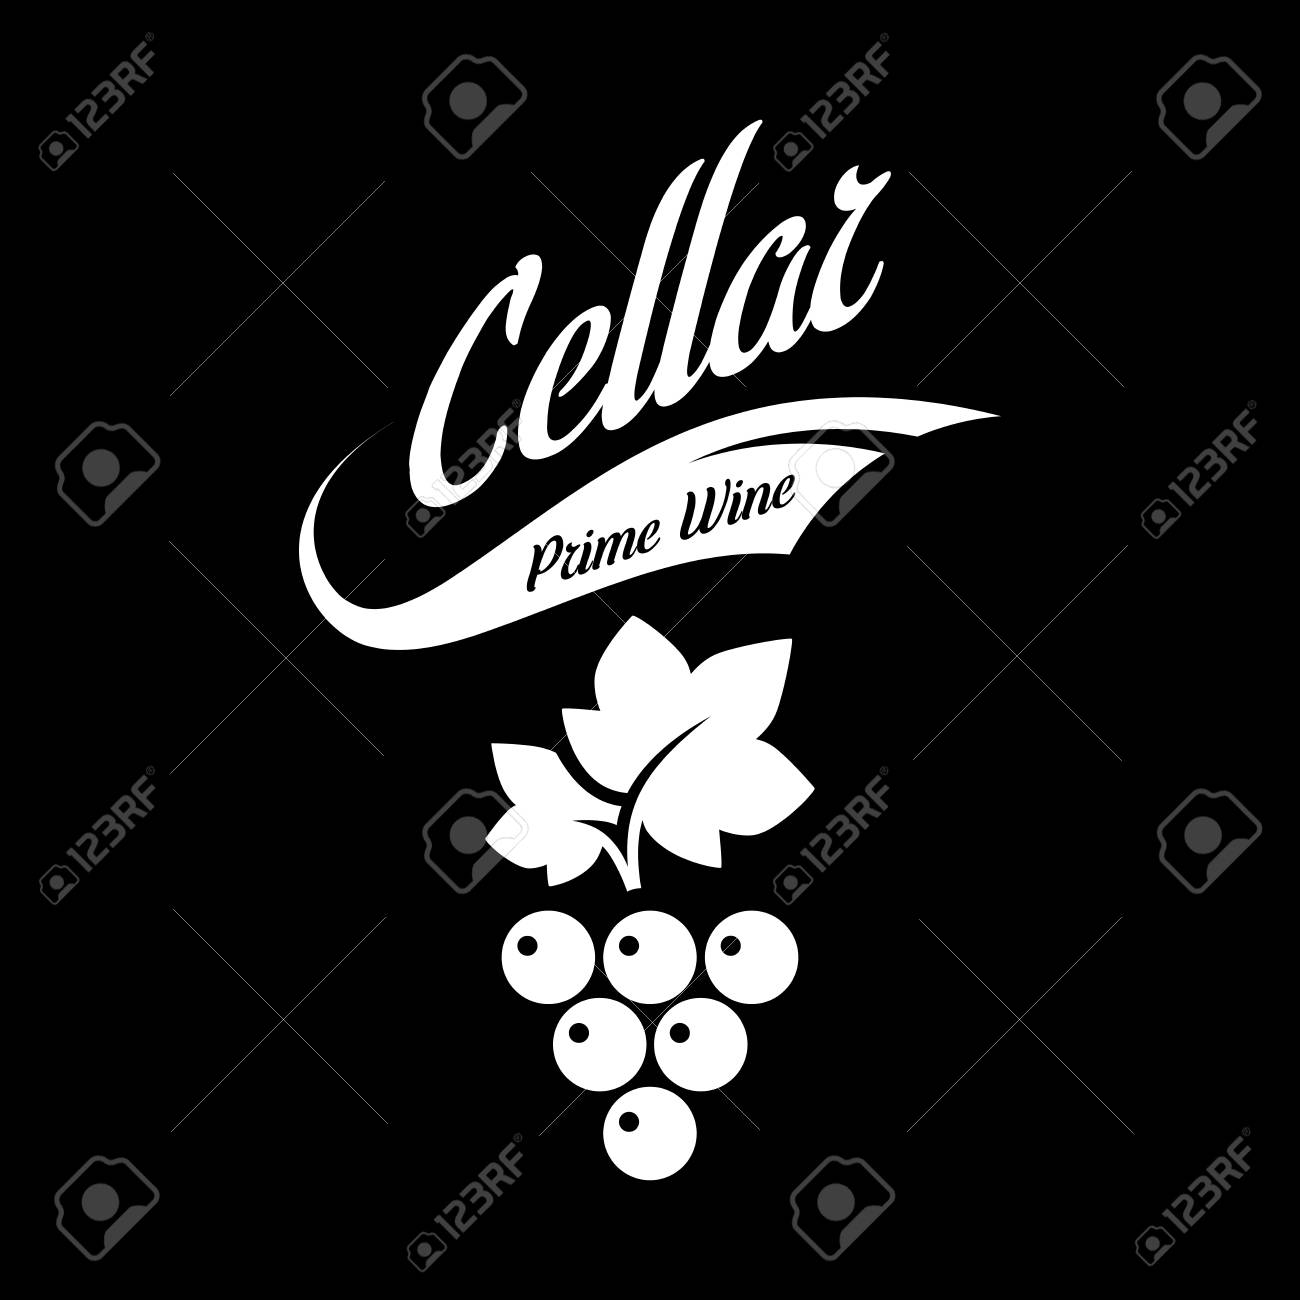 Modern wine vector logo sign for tavern, restaurant, house, shop, store, club and cellar isolated on black background. Premium quality vinery logotype illustration. Fashion brand badge design template. - 126498940